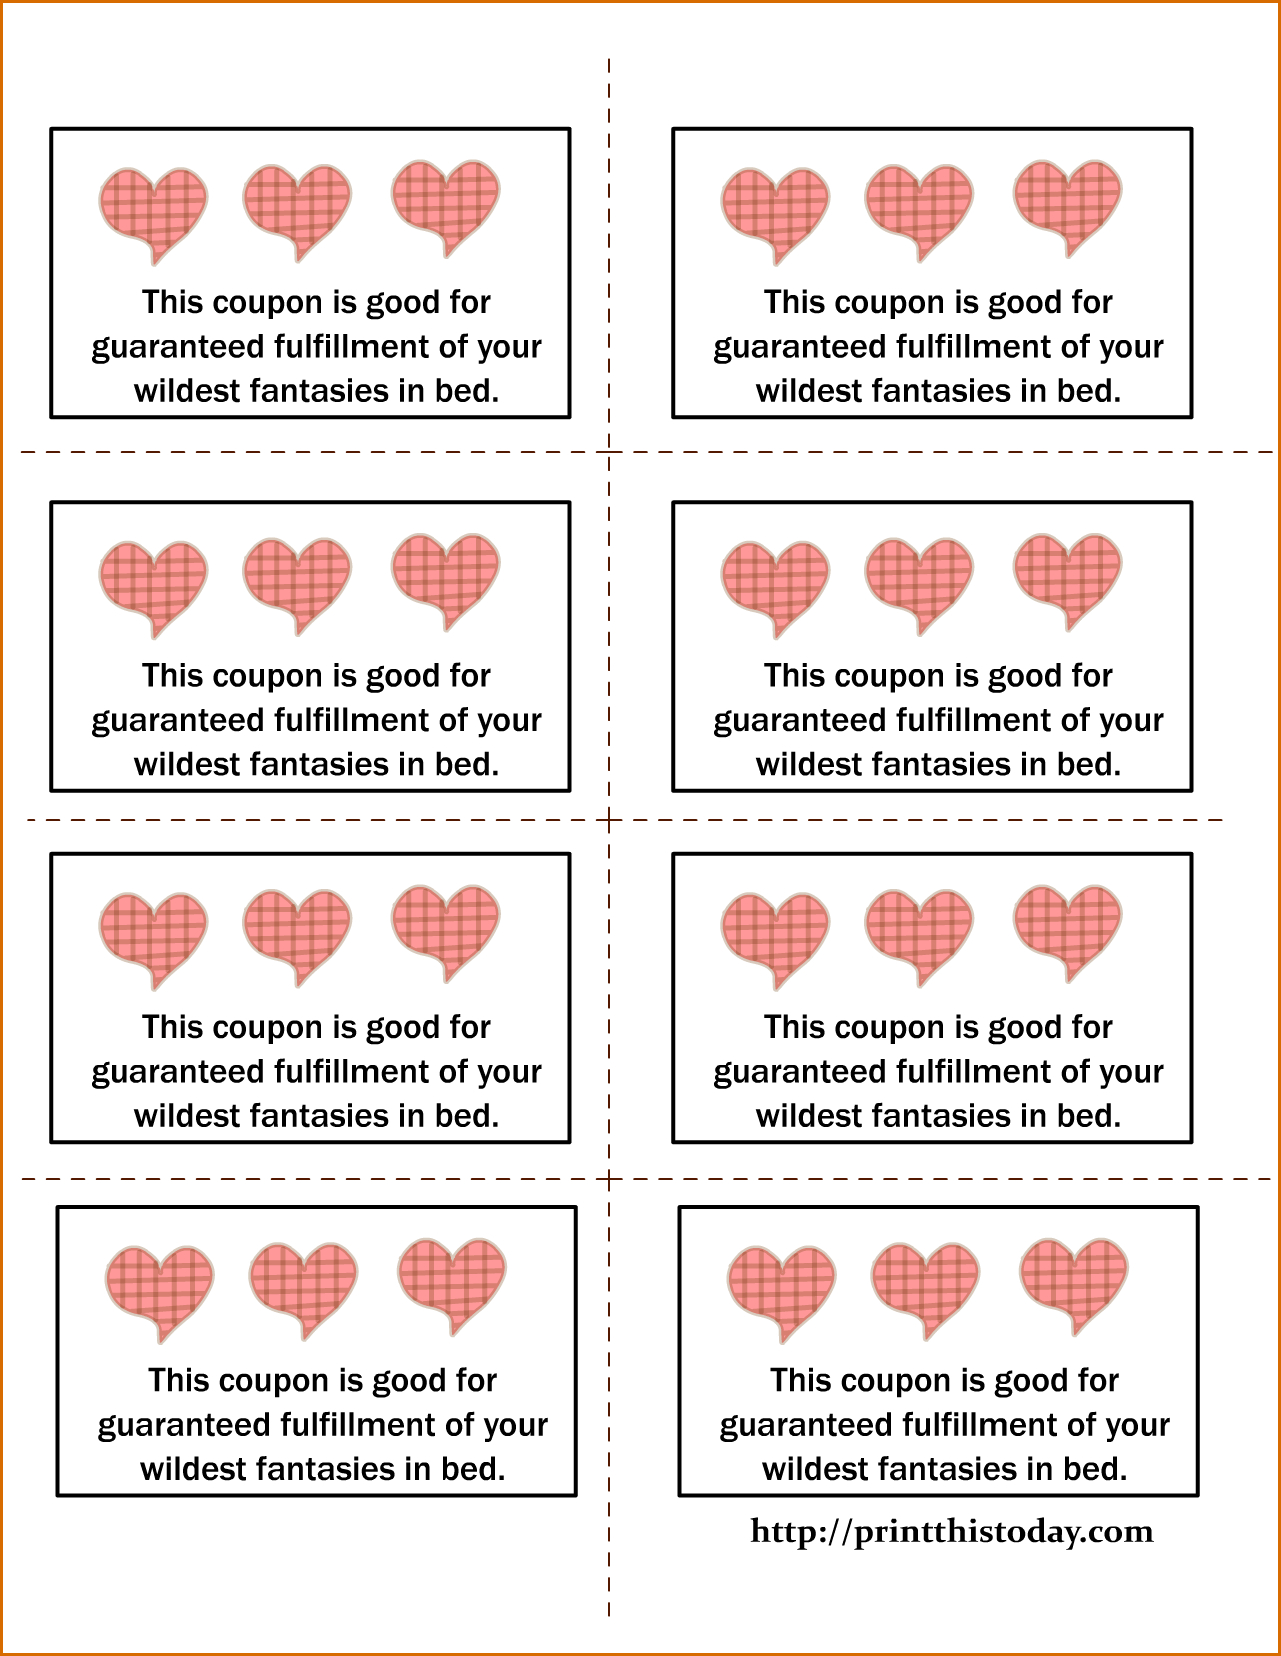 Free Travel Gift Certificate Template Elegant Coupons  Picture - Free Printable Coupon Templates